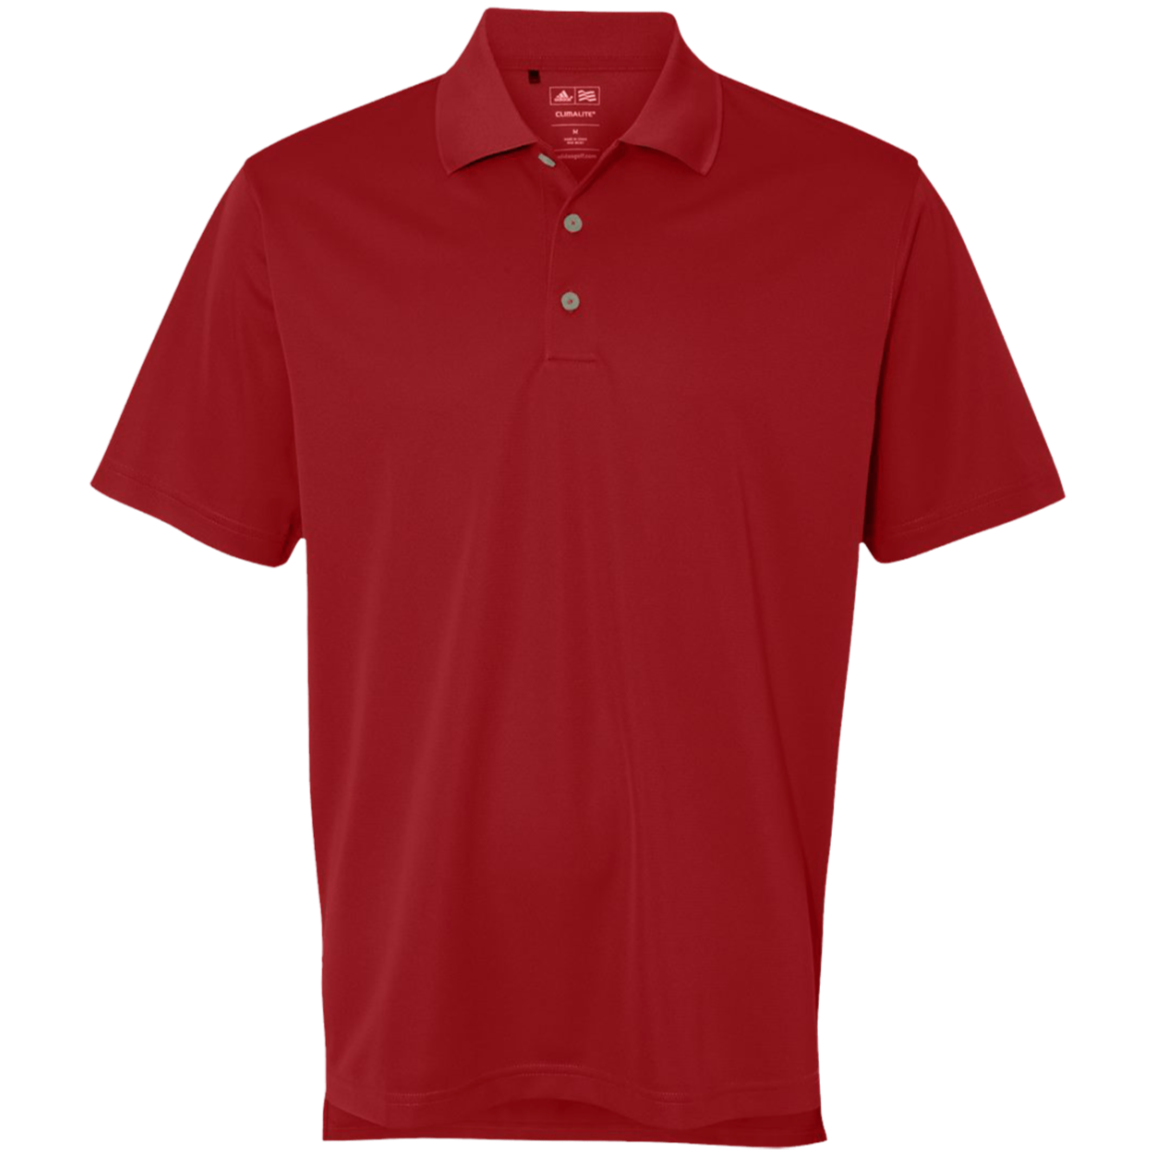 Custom Adidas Golf Climalite Basic Performance Pique Polo Mylocker